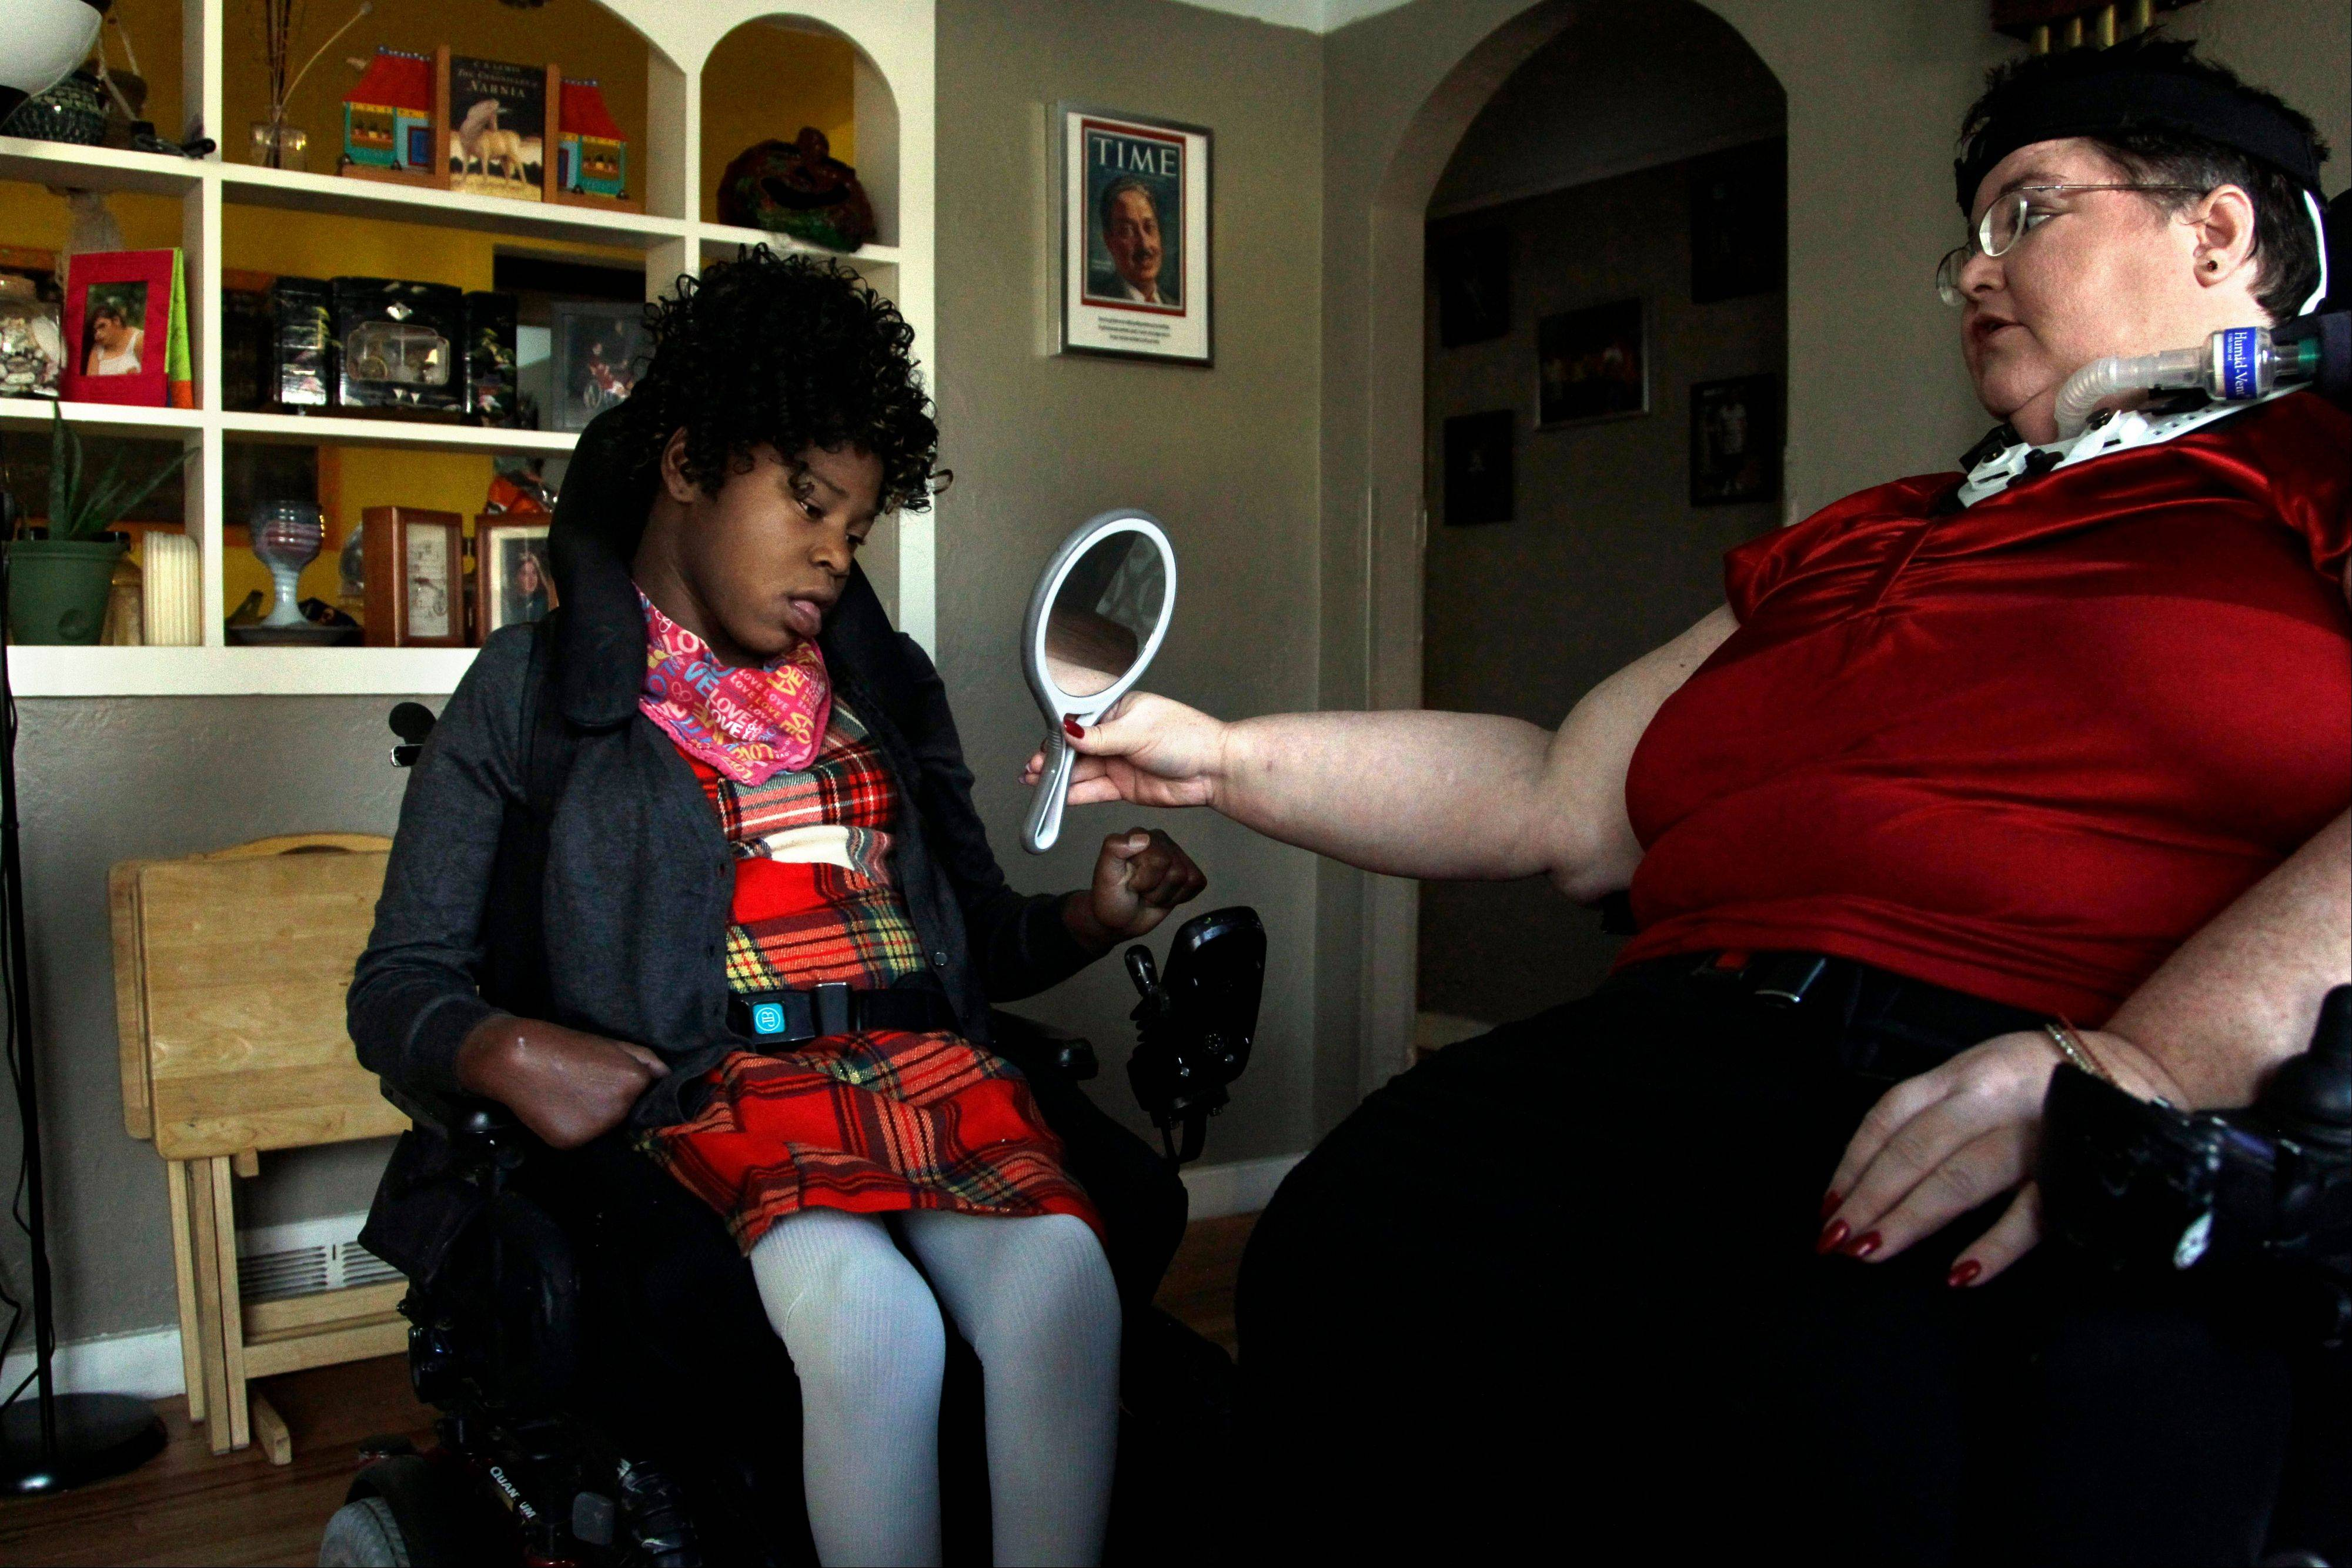 Carrie Ann Lucas, right, mother of four disabled adopted children, holds up a mirror for her daughter Adrianne, 13, at their home in Windsor, Colo., before going on an outing. Lucas herself uses a power wheelchair and is reliant on a ventilator due to a form of muscular dystrophy.